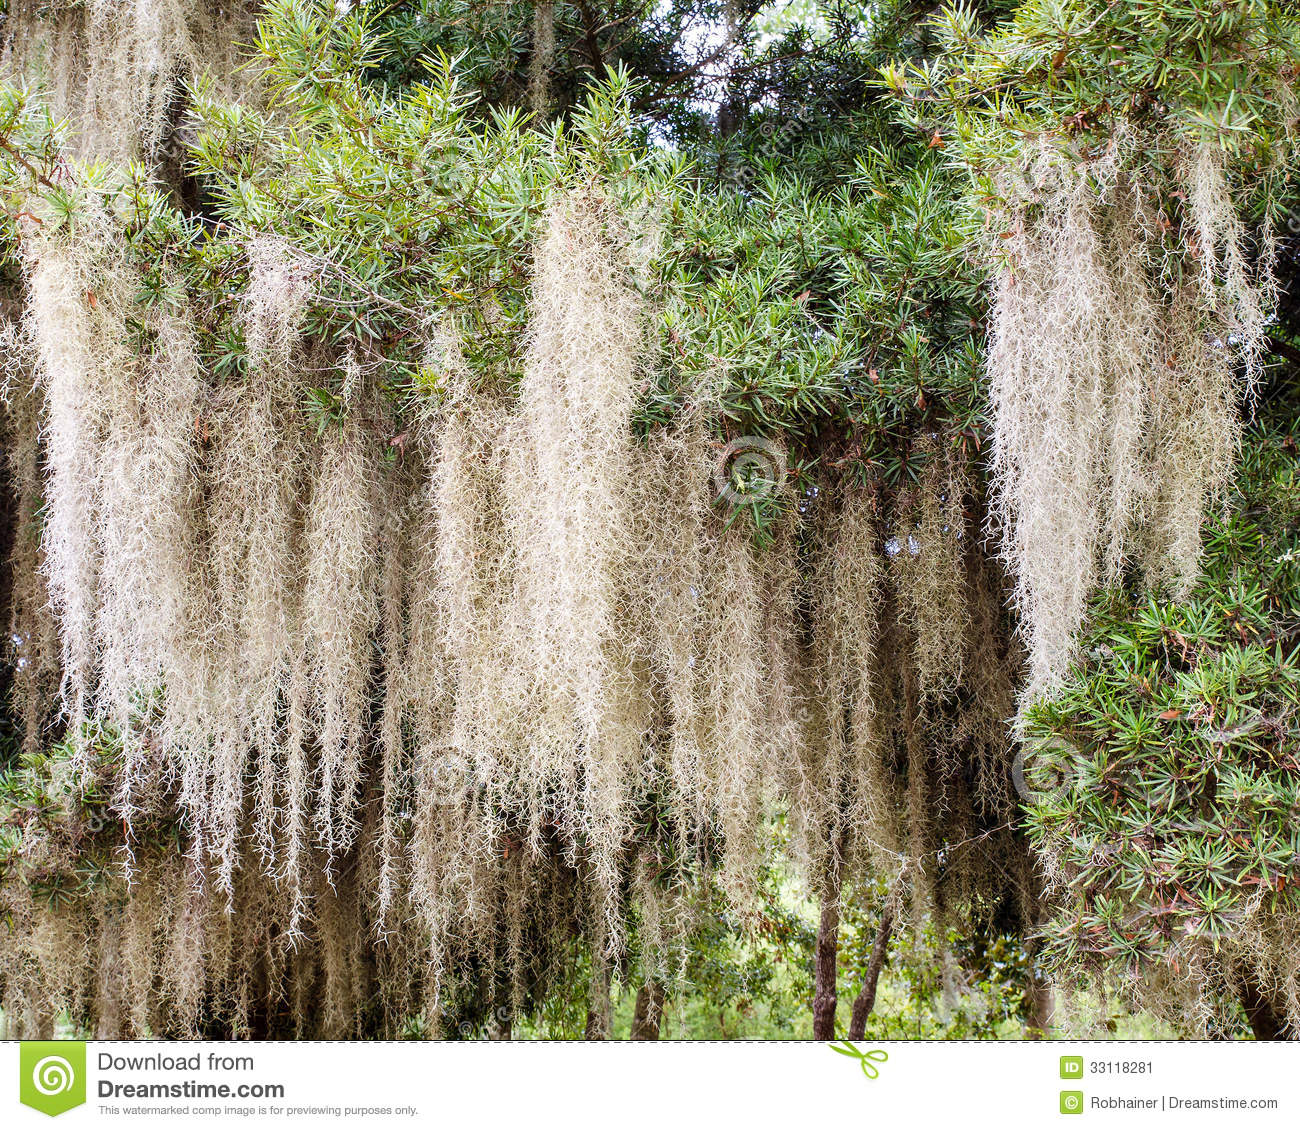 Spanish Moss Growing On Tree Stock Image - Image: 33118281